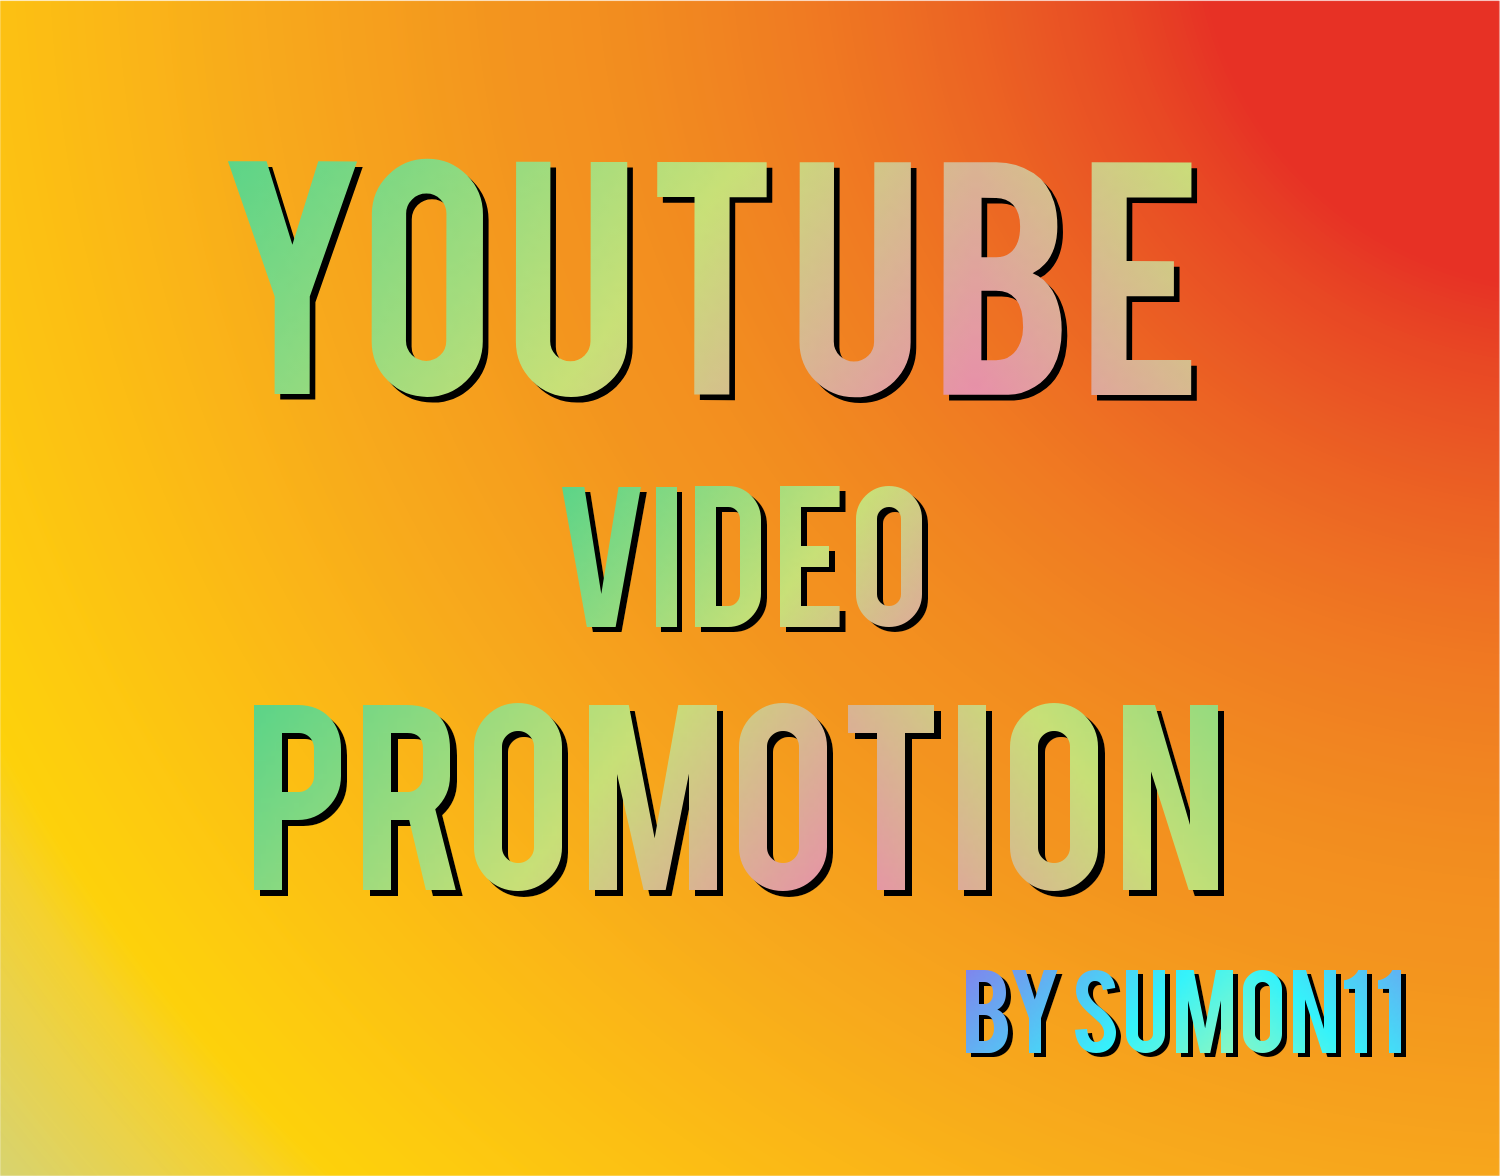 I will do promote youtube video promotion social media marketing by Sumon11